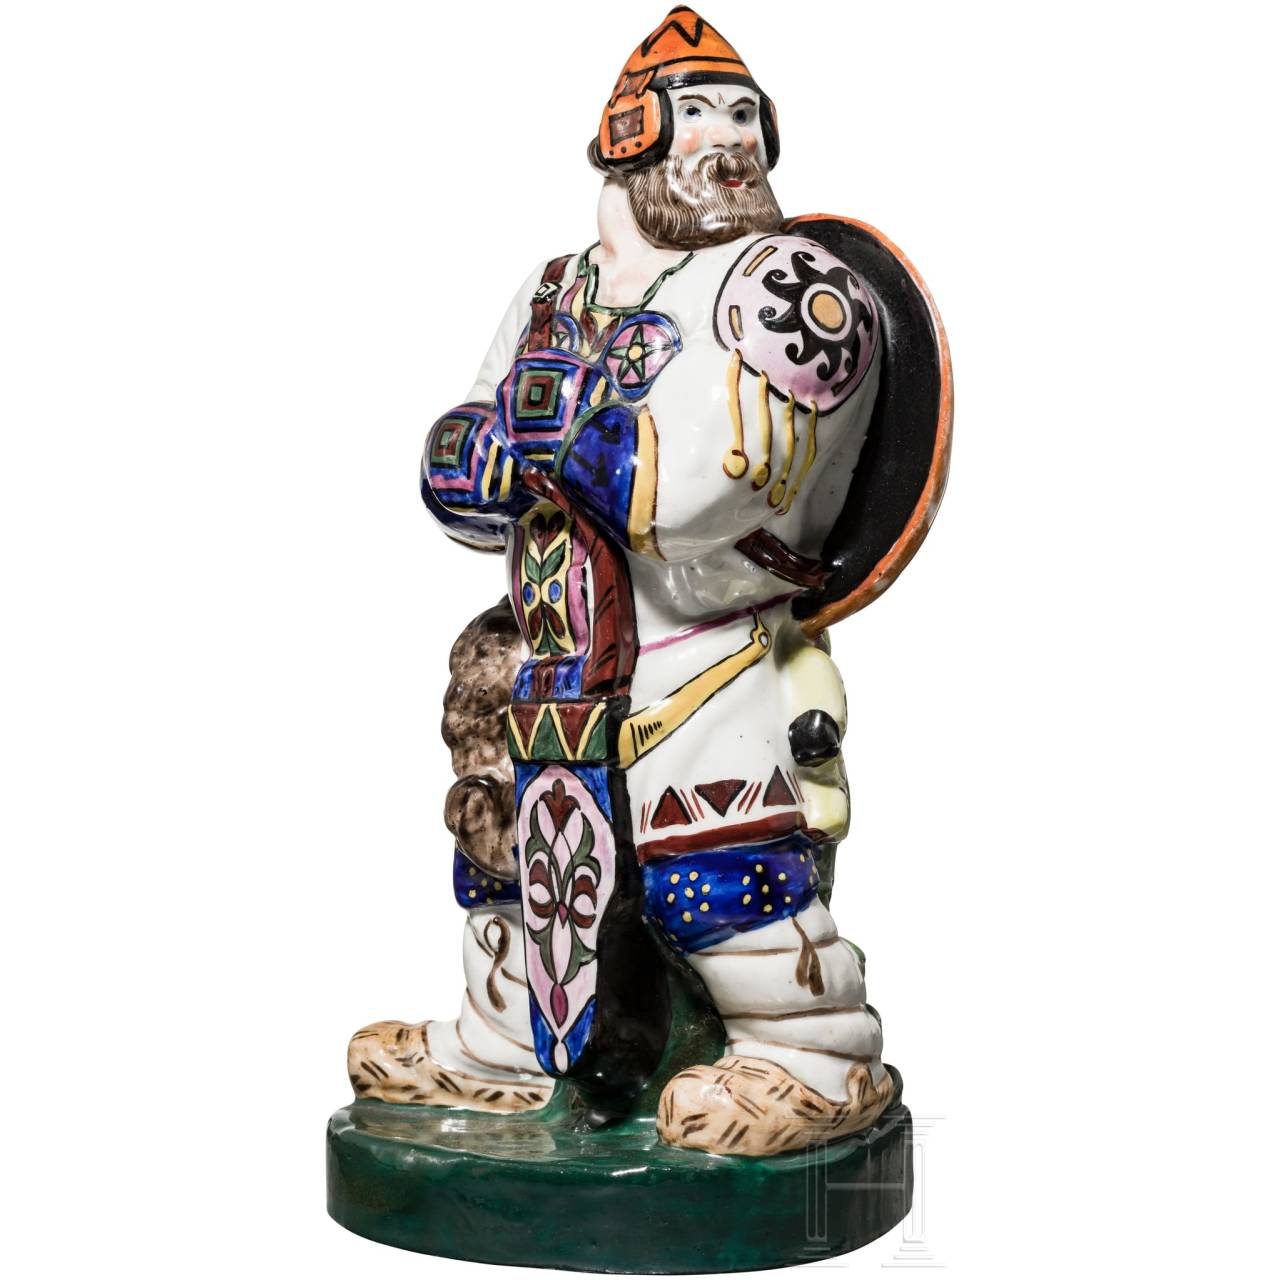 A hand-painted porcelain figurine of a bogatyr in neo-Russian style, Russia, circa 1915 – 1925